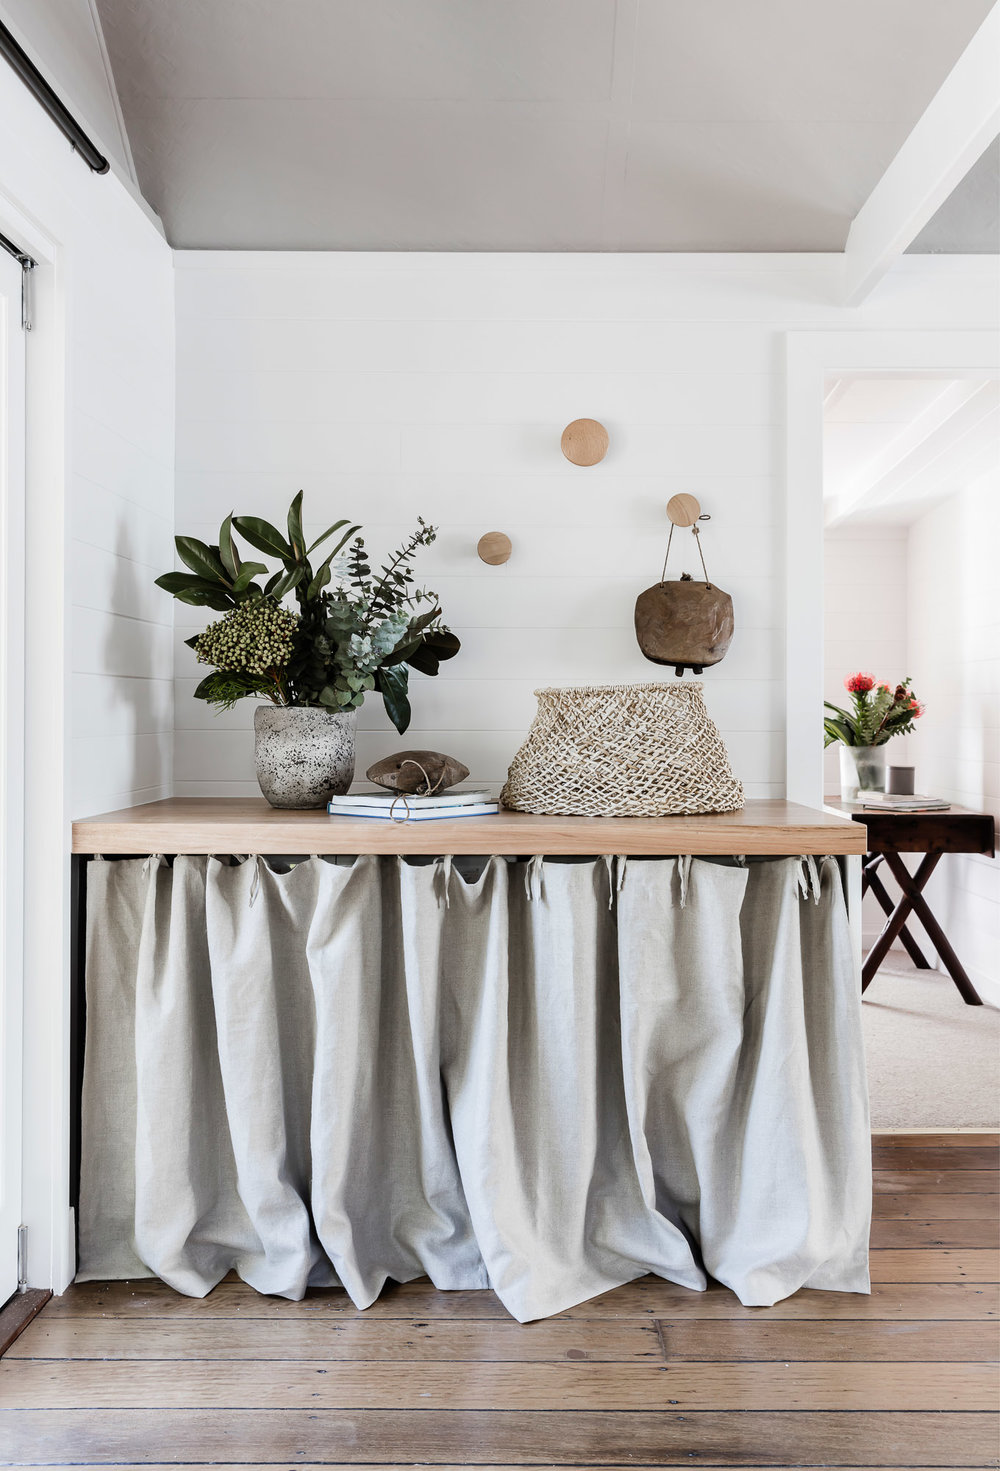 Bangalow_LouiseWalsh_Styled5_Project82.jpg